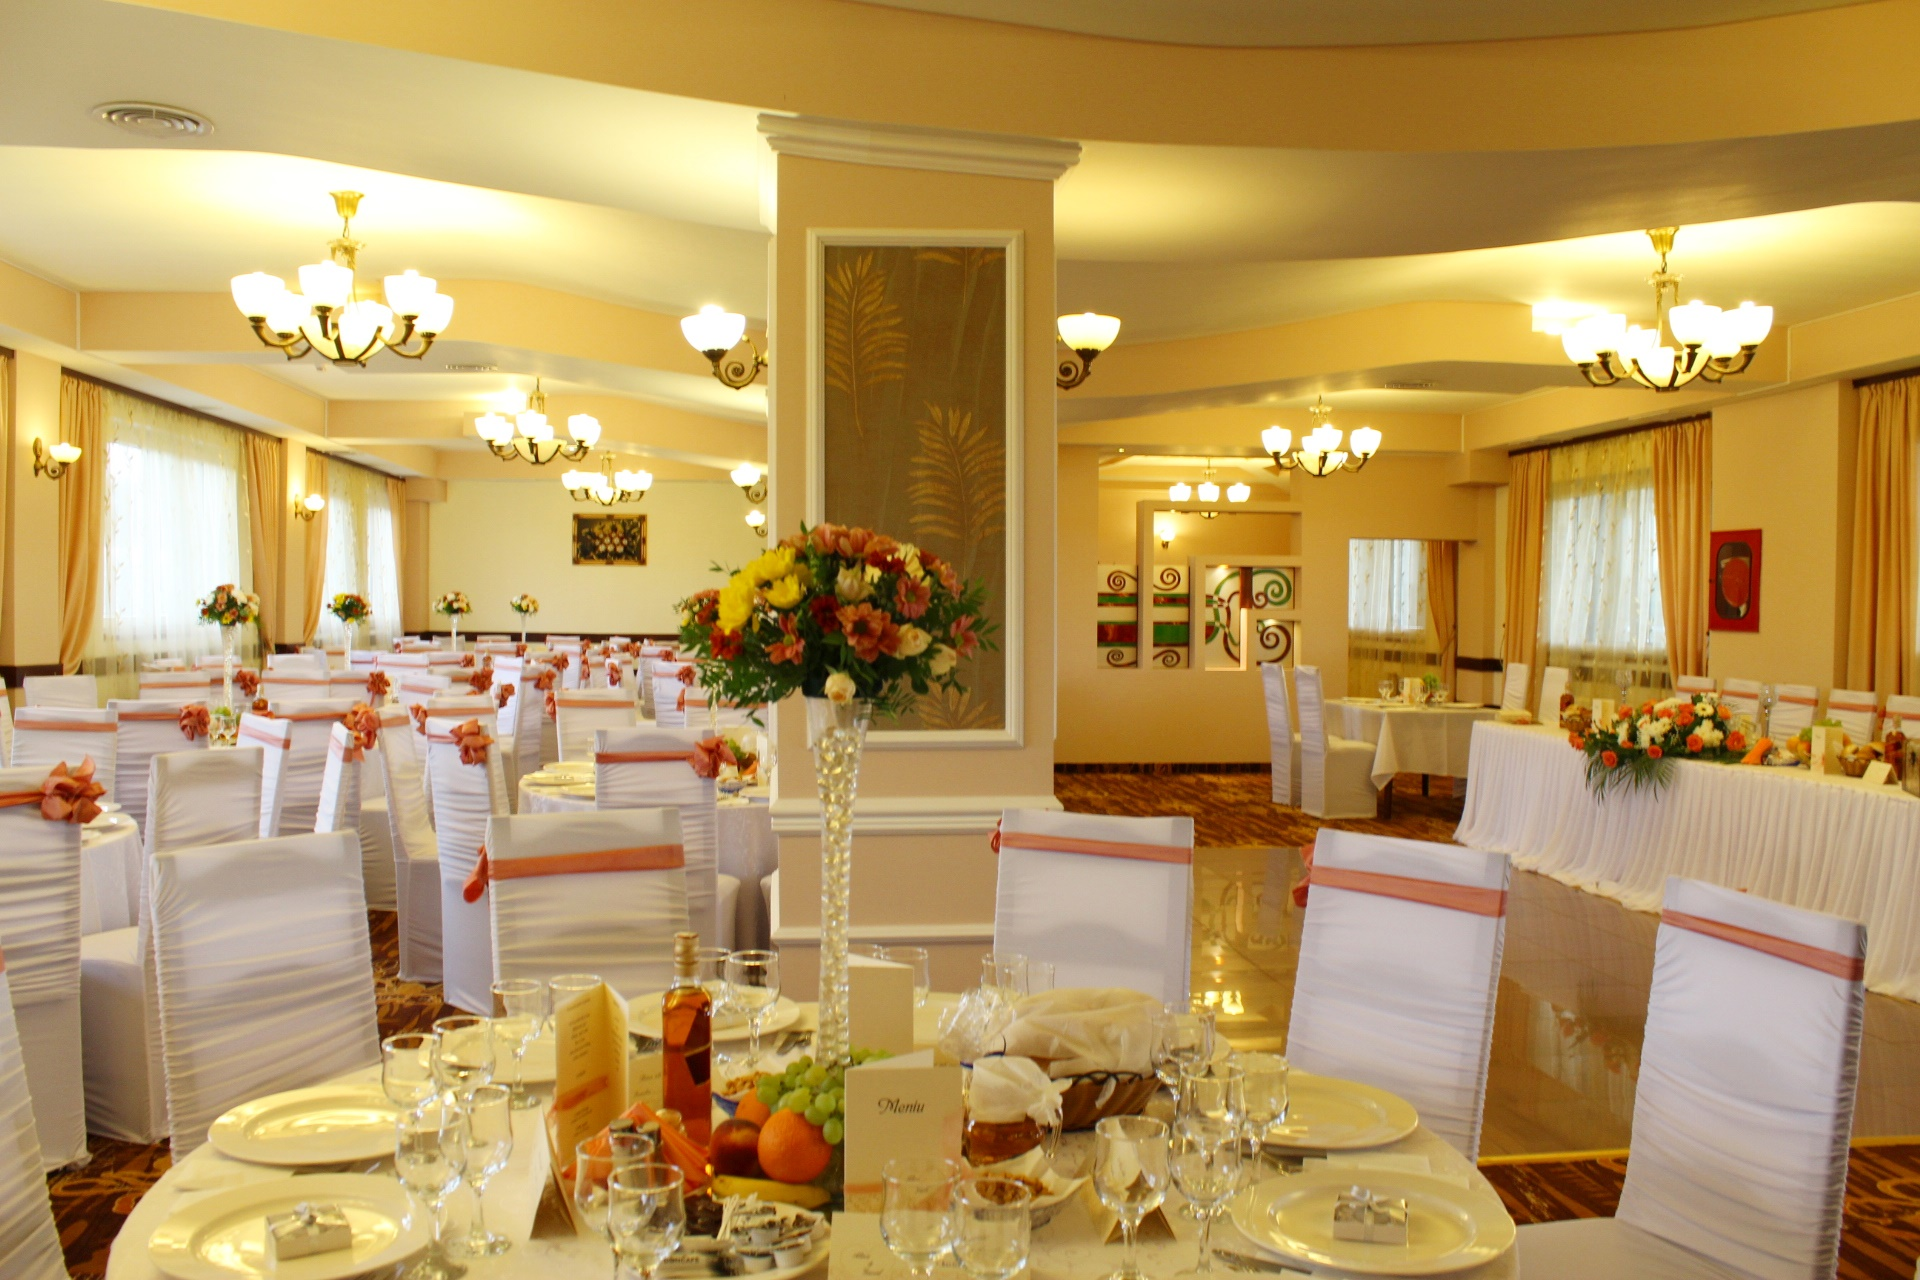 Sala-Panoramic-Restaurant-Parc-4.jpg